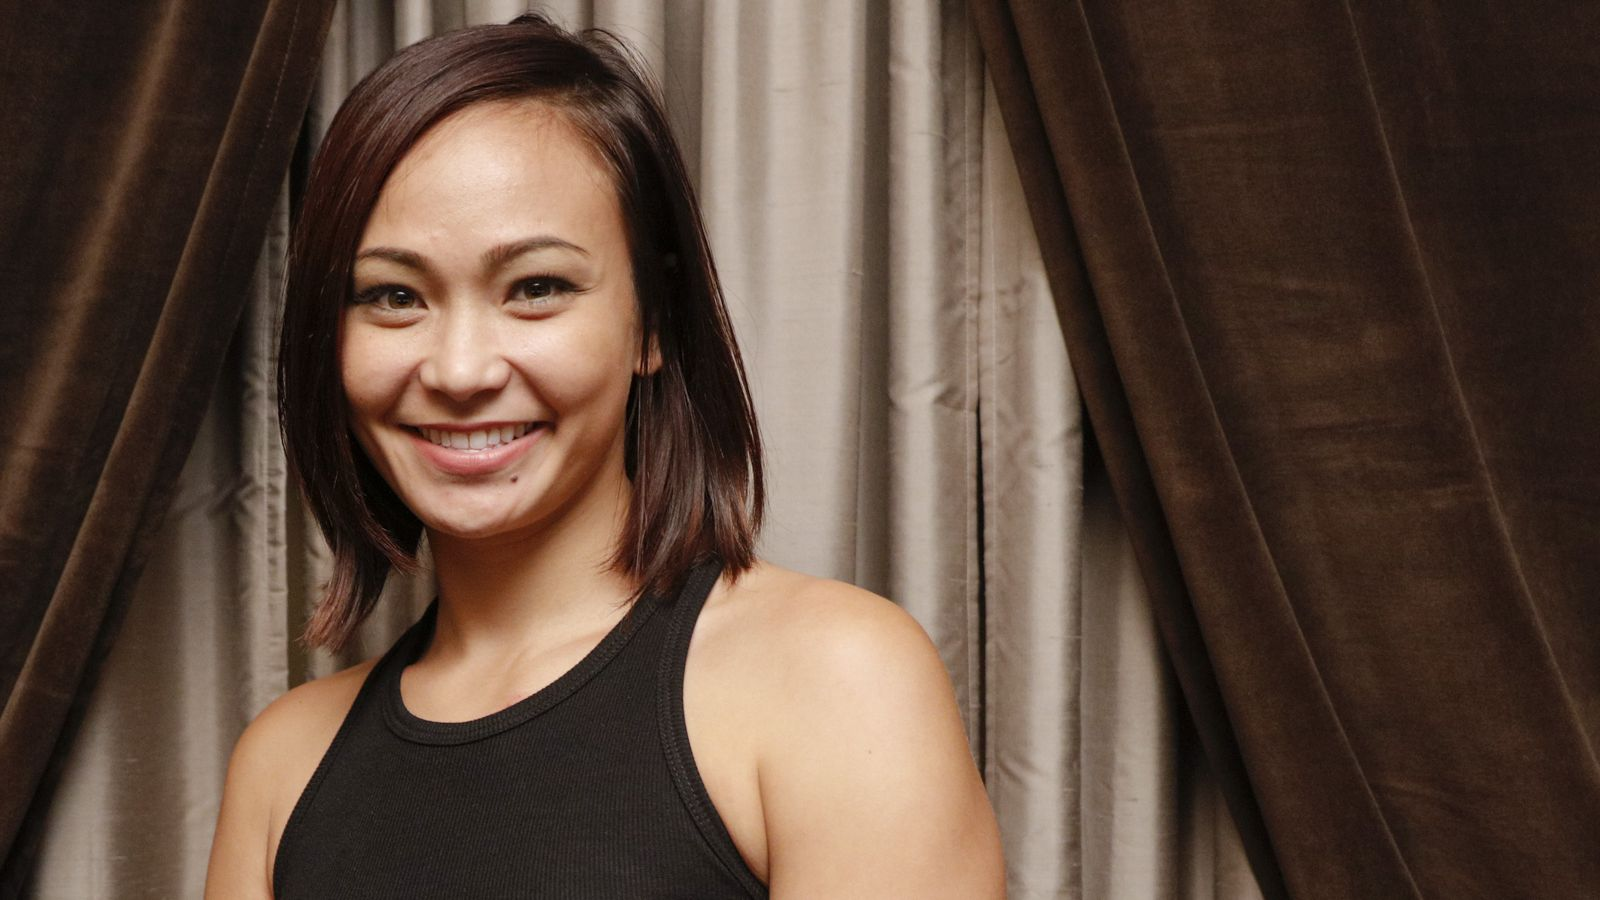 Michelle Waterson Nude Photos 19